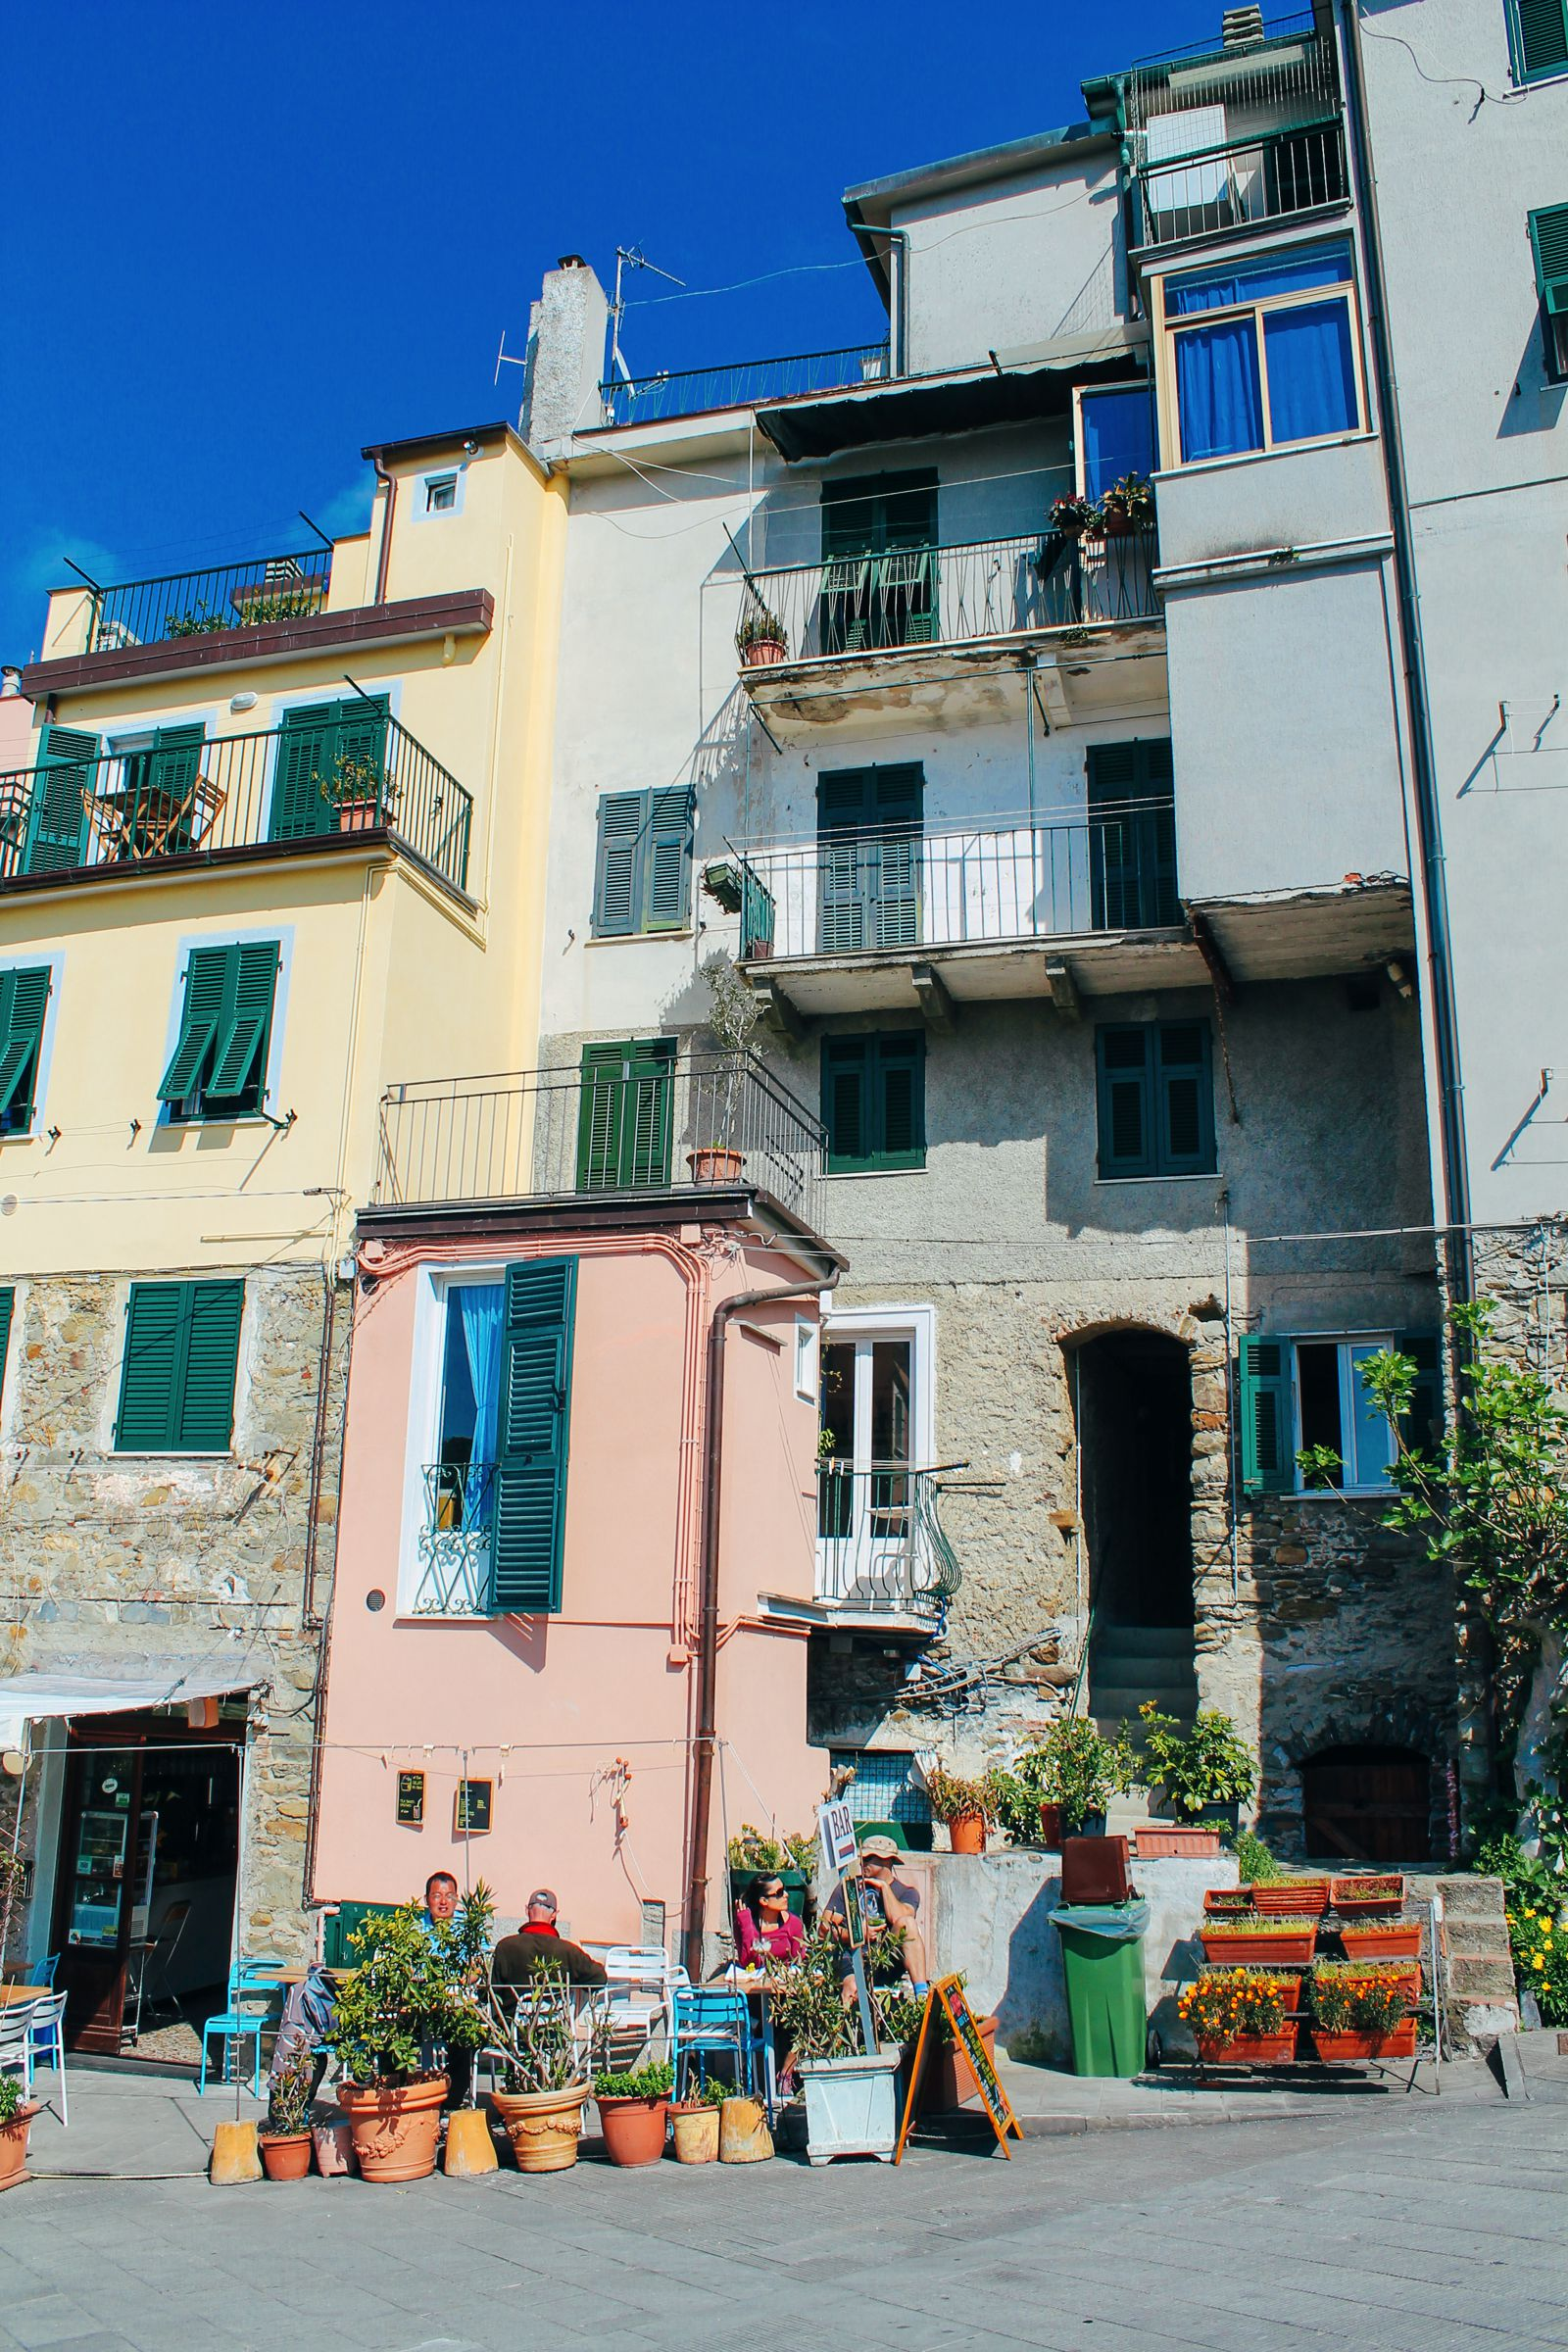 Corniglia in Cinque Terre, Italy - The Photo Diary! [3 of 5] (18)